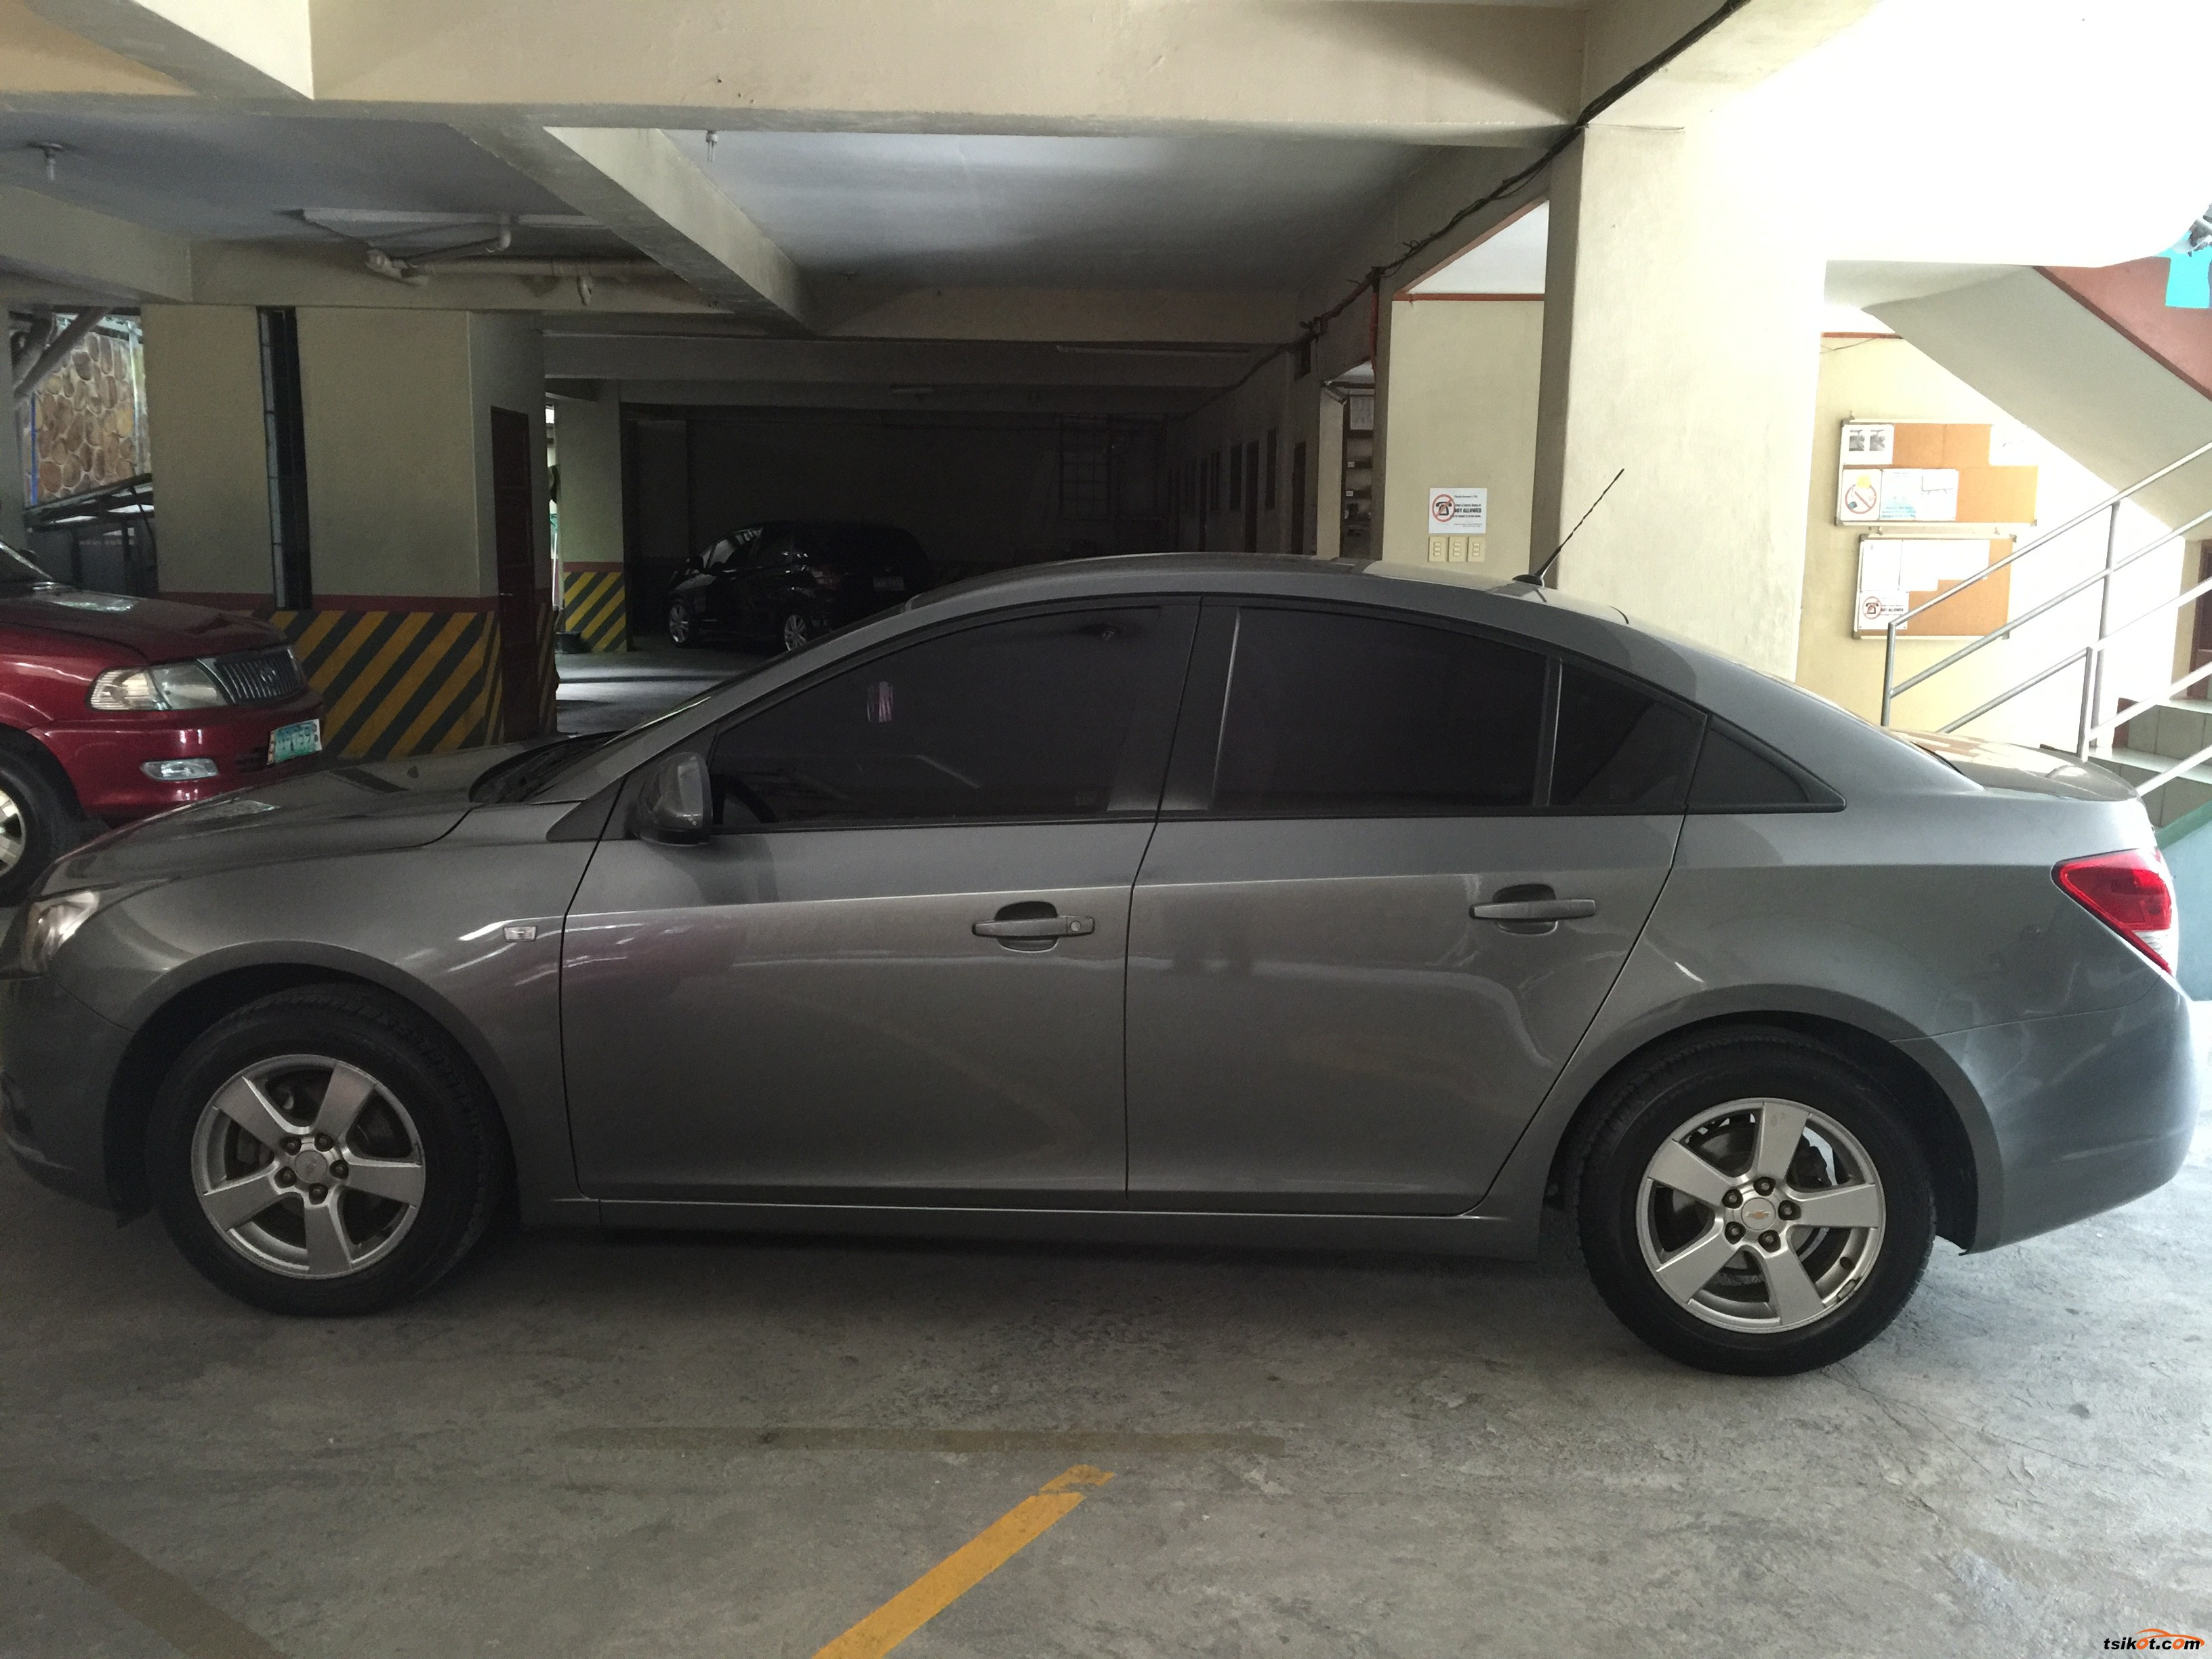 Chevrolet Cruze 2011 Car For Sale Metro Manila